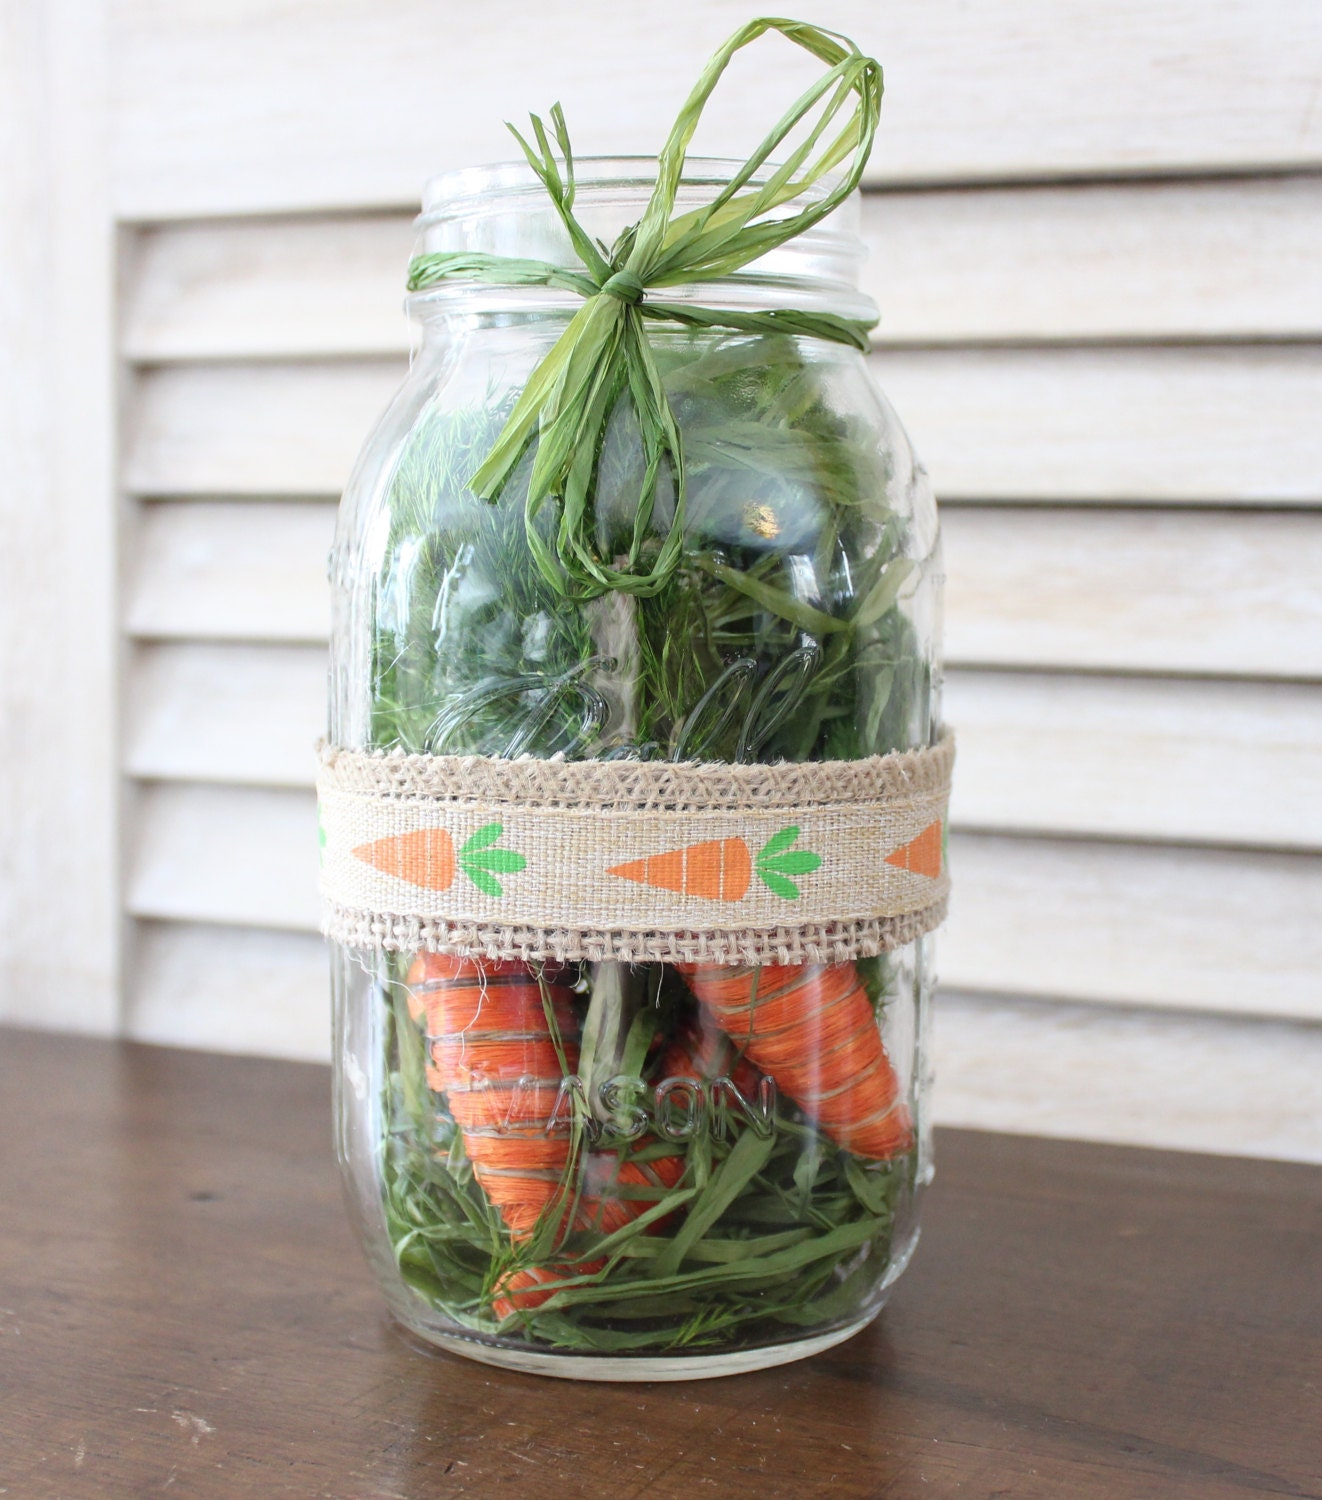 Easter Mason Jar Centerpiece Carrots, unique rustic carrot centerpiece, easter table decor, rustic easter table decorations mason jar